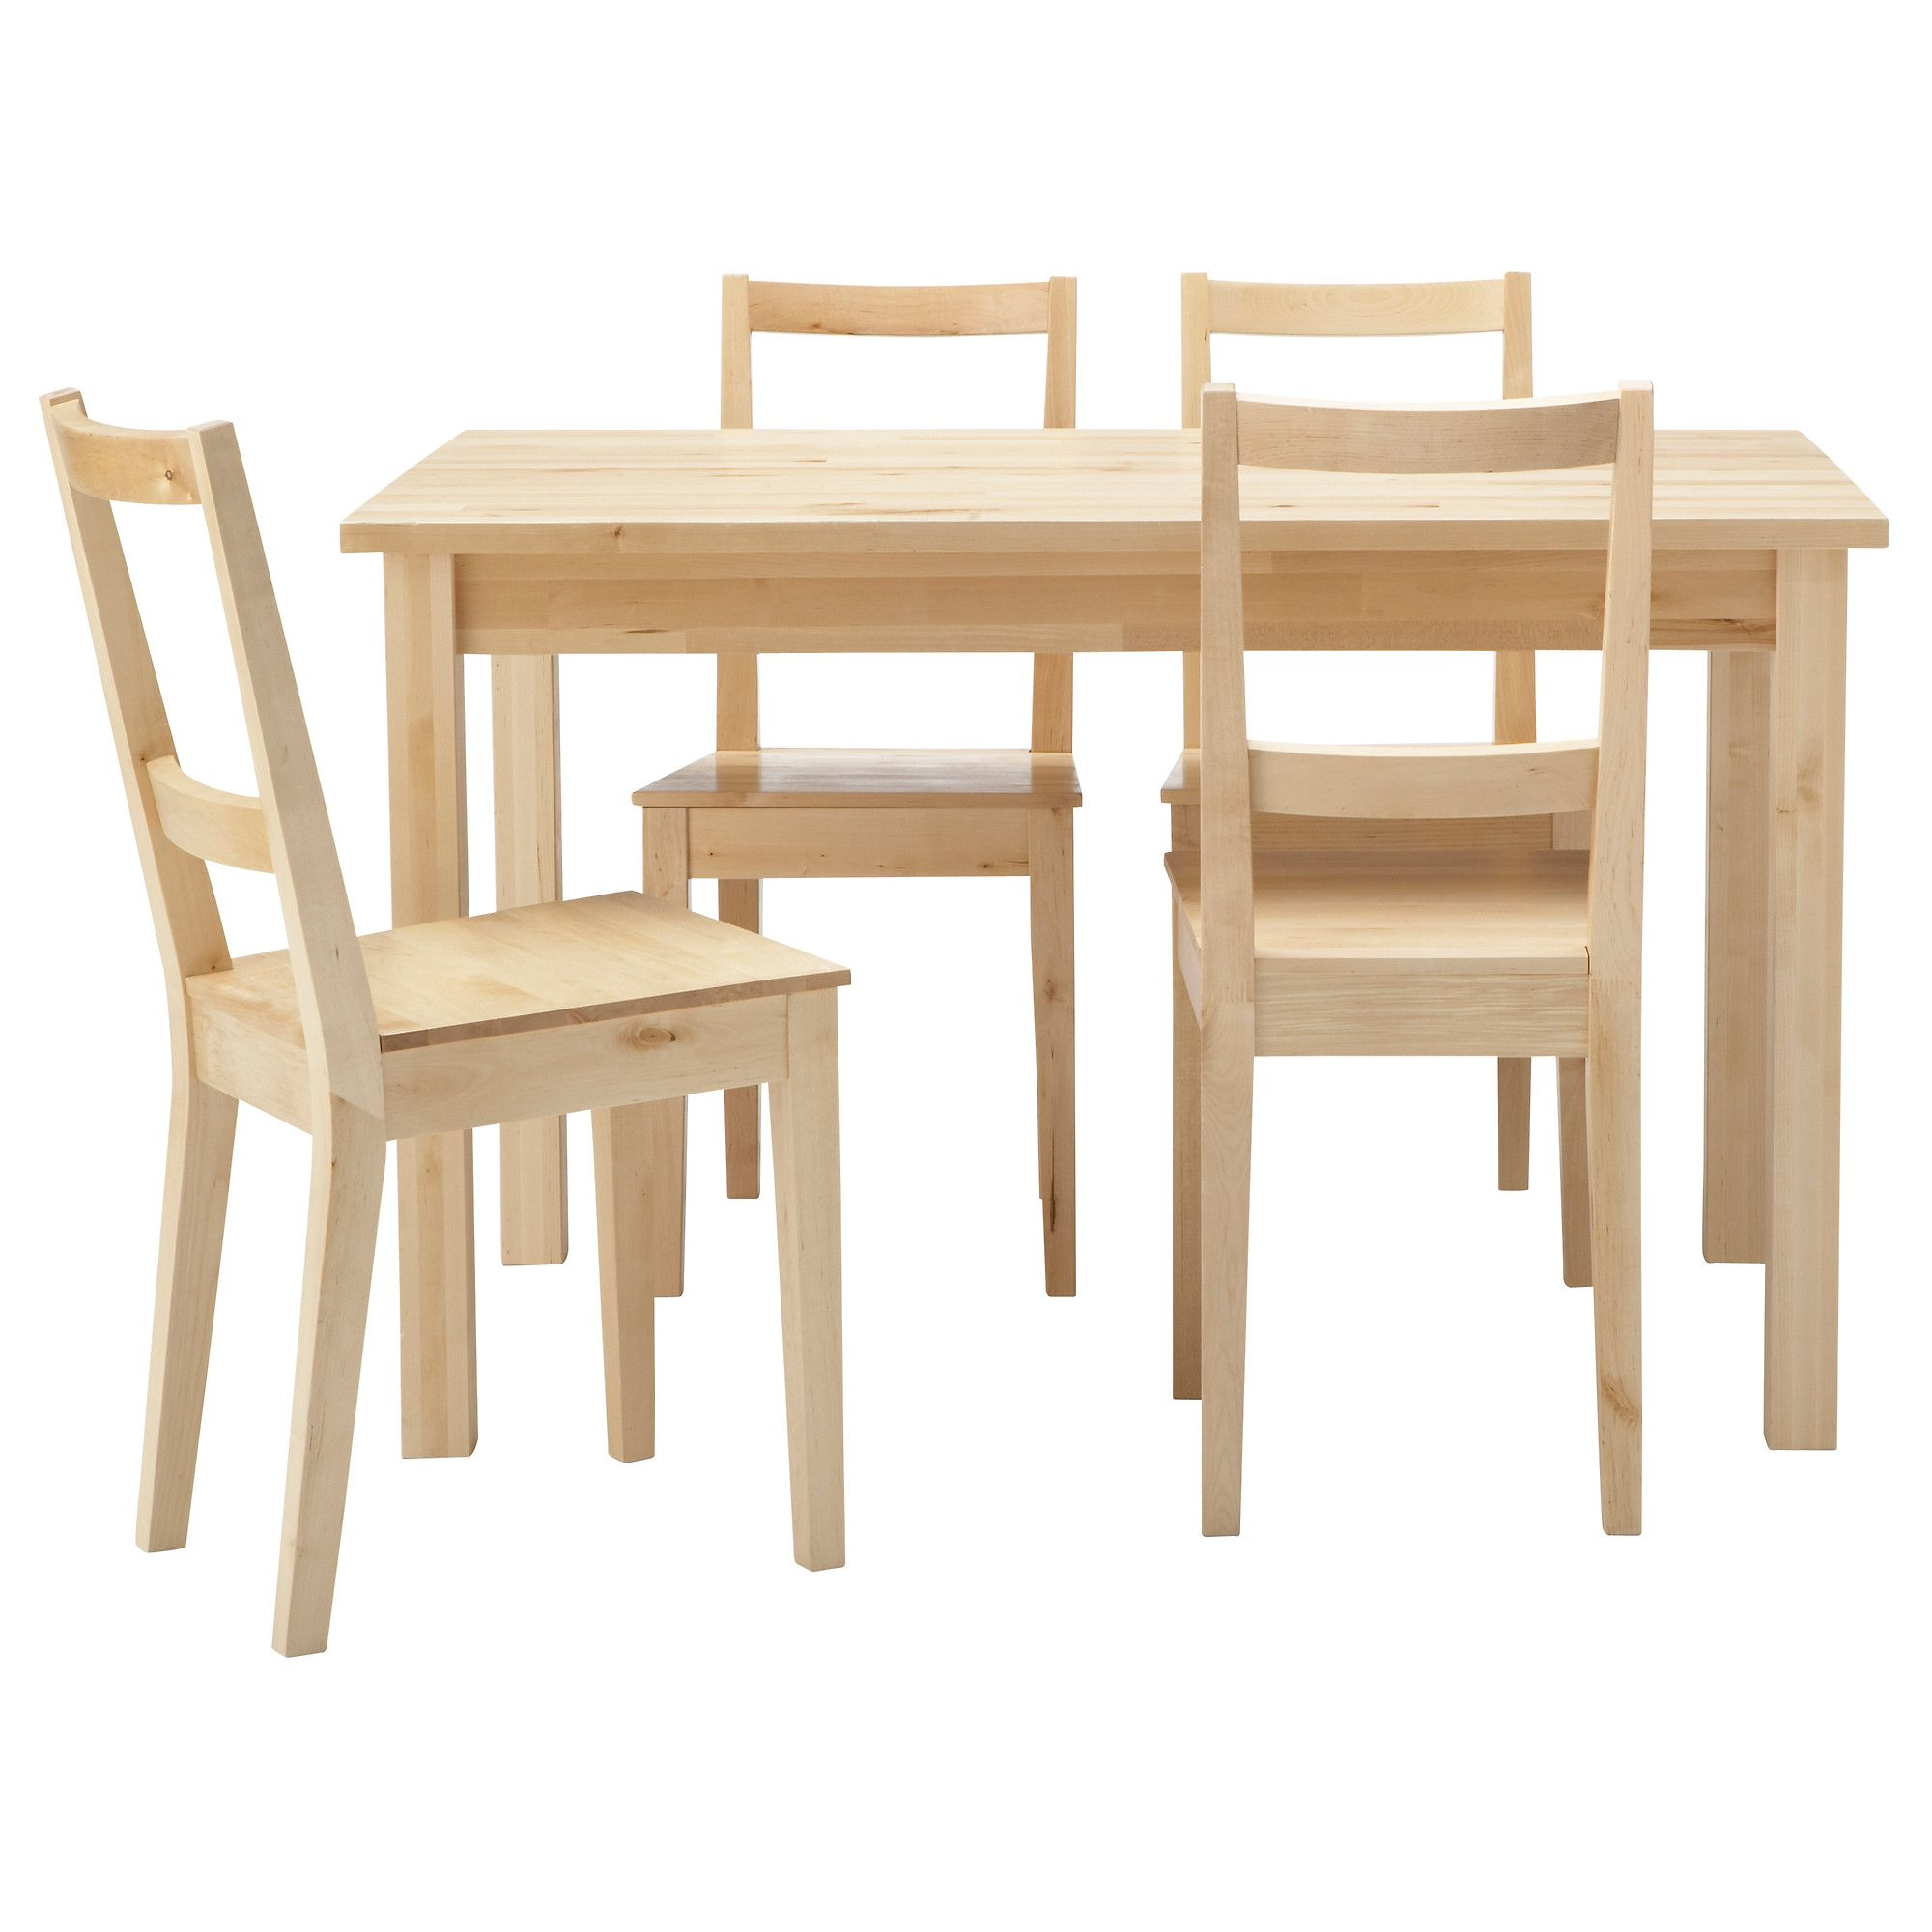 Dining room furniture appealing ikea dining sets with for Ikea dining table and chairs set